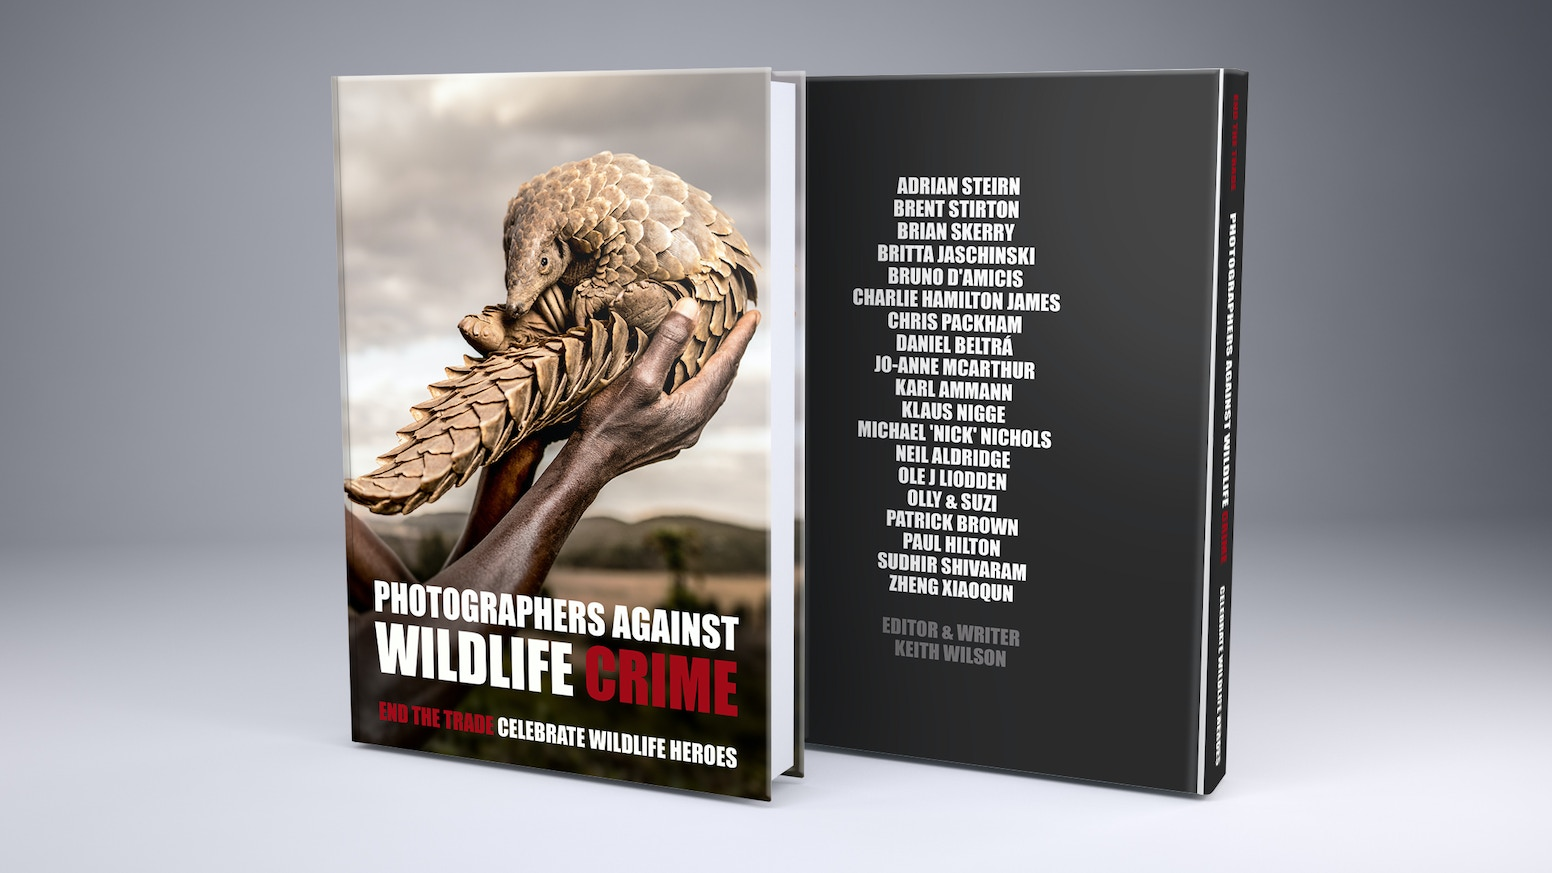 We will launch this book in May 2018 followed by a Mandarin edition for sale in China.THANK YOU for supporting us. You did it! Please take a look at our website. photographersagainstwildlifecrime.com